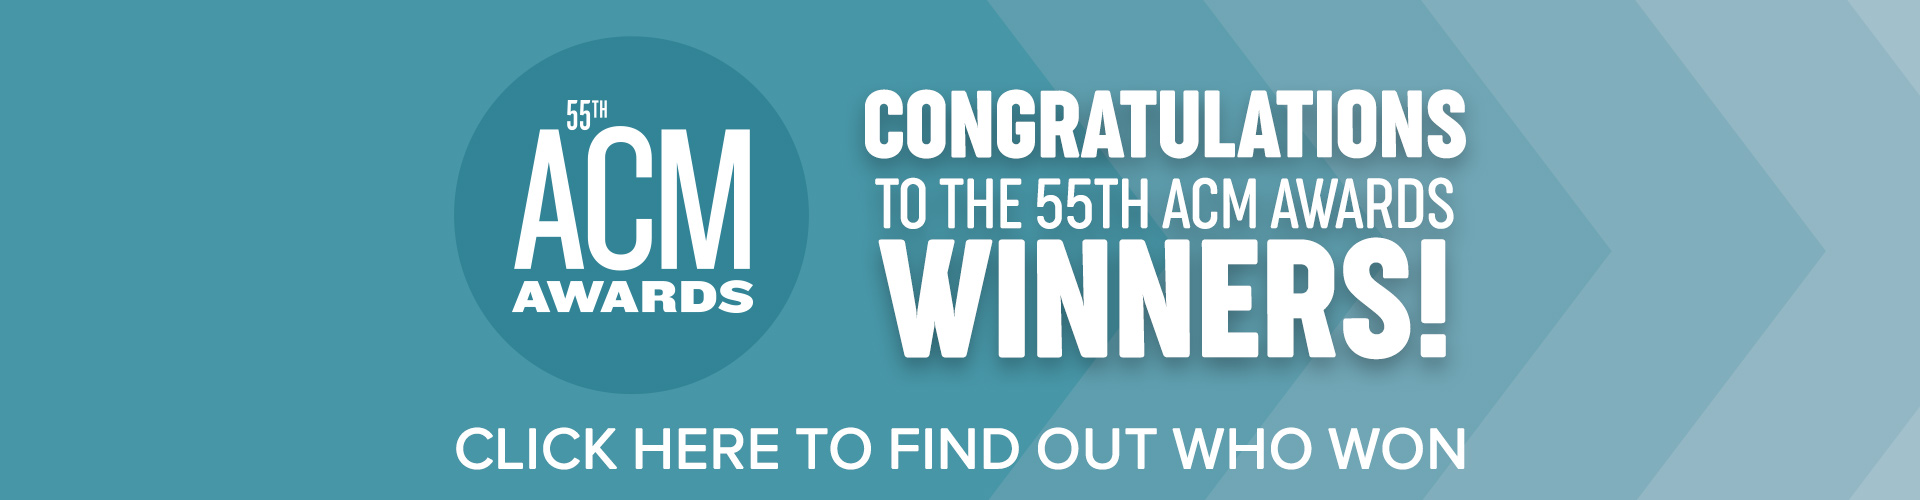 55th ACM winners 1920x500.jpg